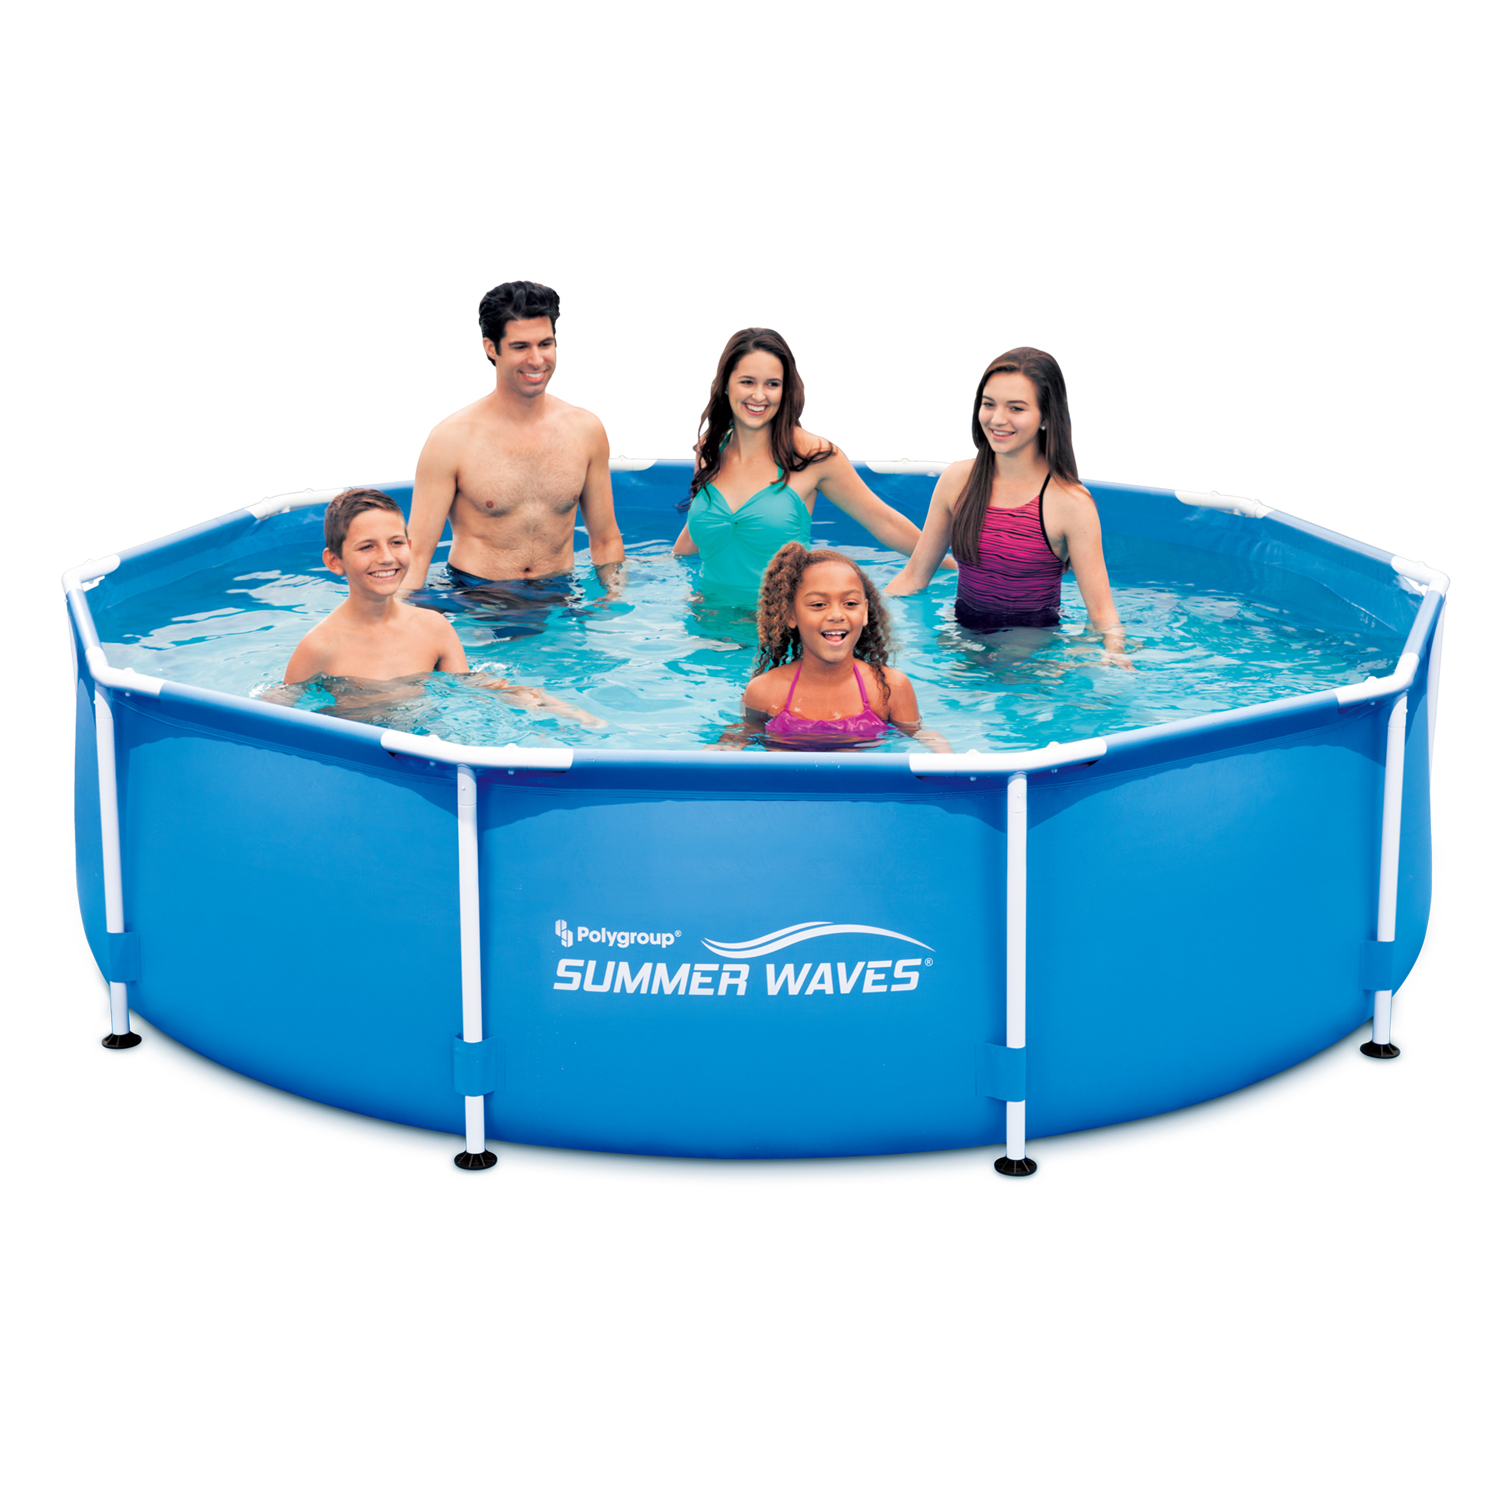 "Summer Waves 10' x 30"" Metal Frame Above Ground Swimming Pool"